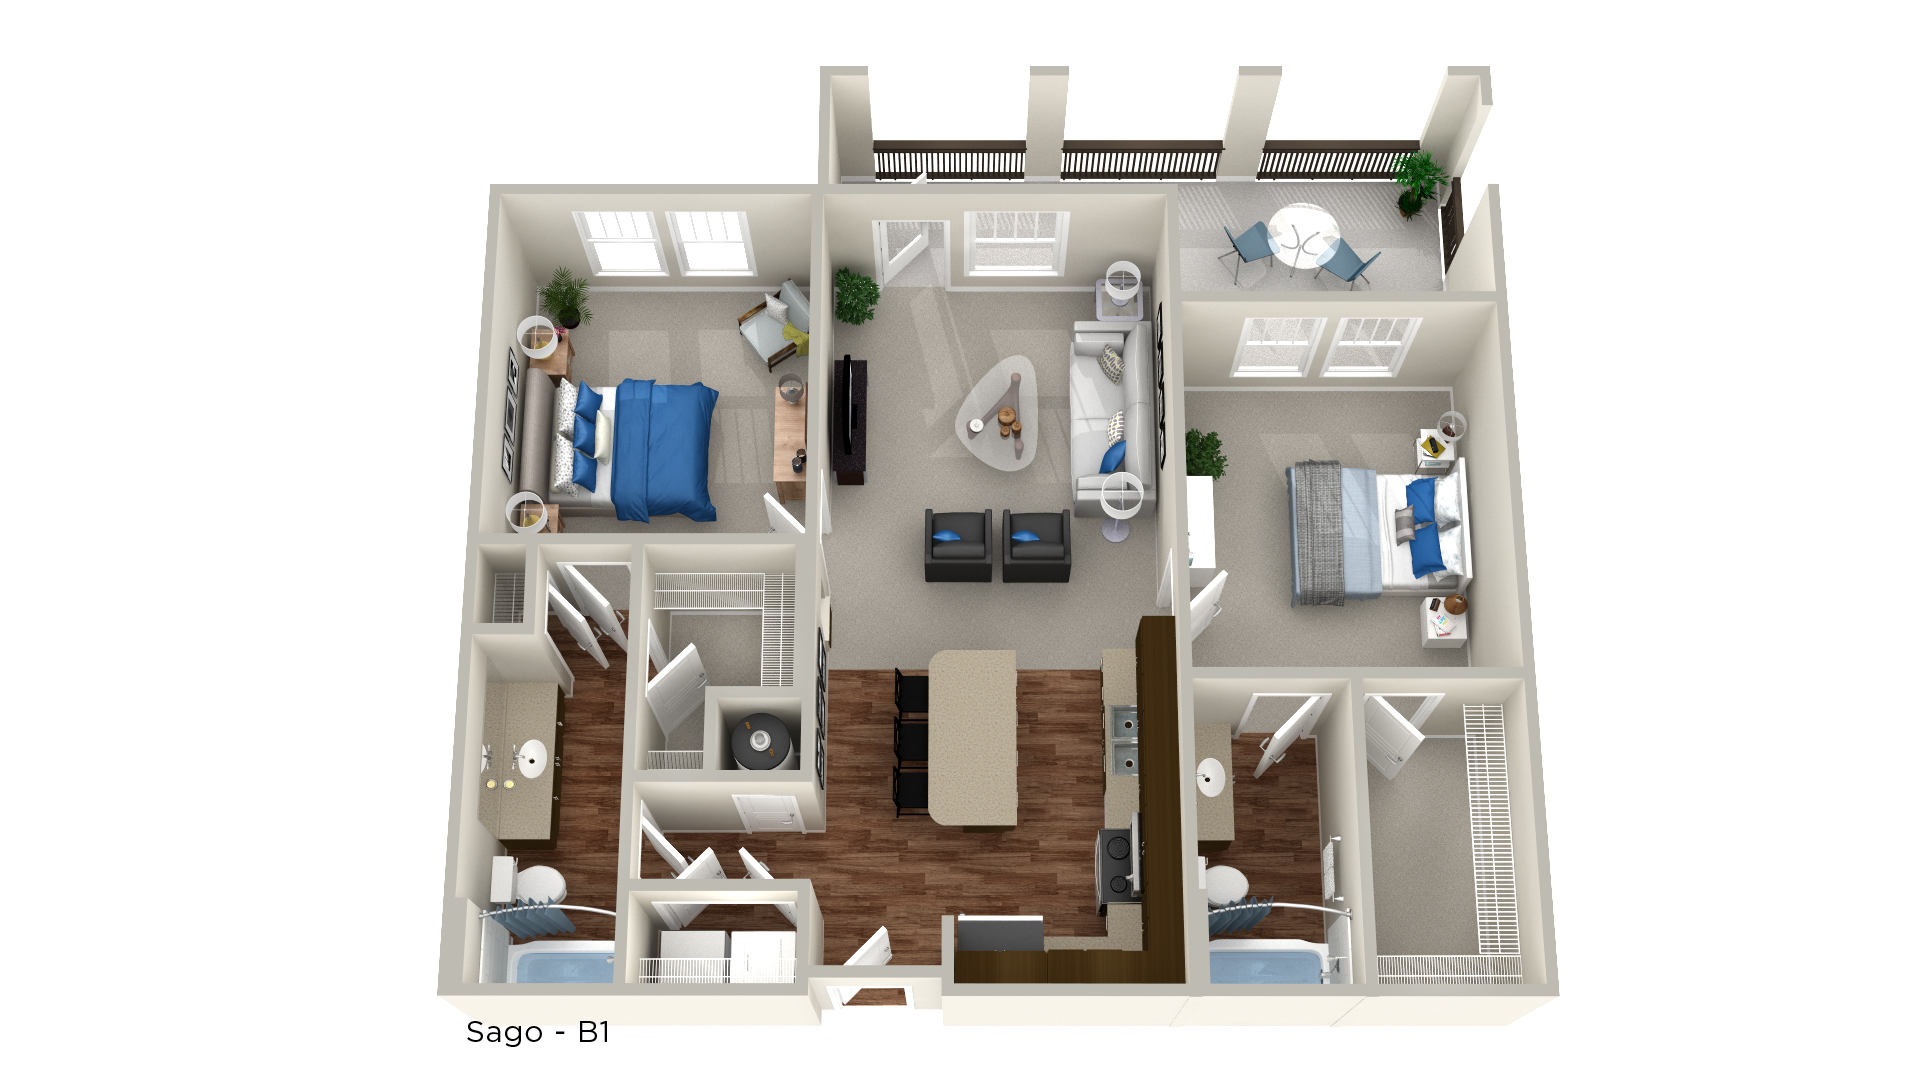 Whitepalm Luxury Apartment Homes - Floorplan - Sago